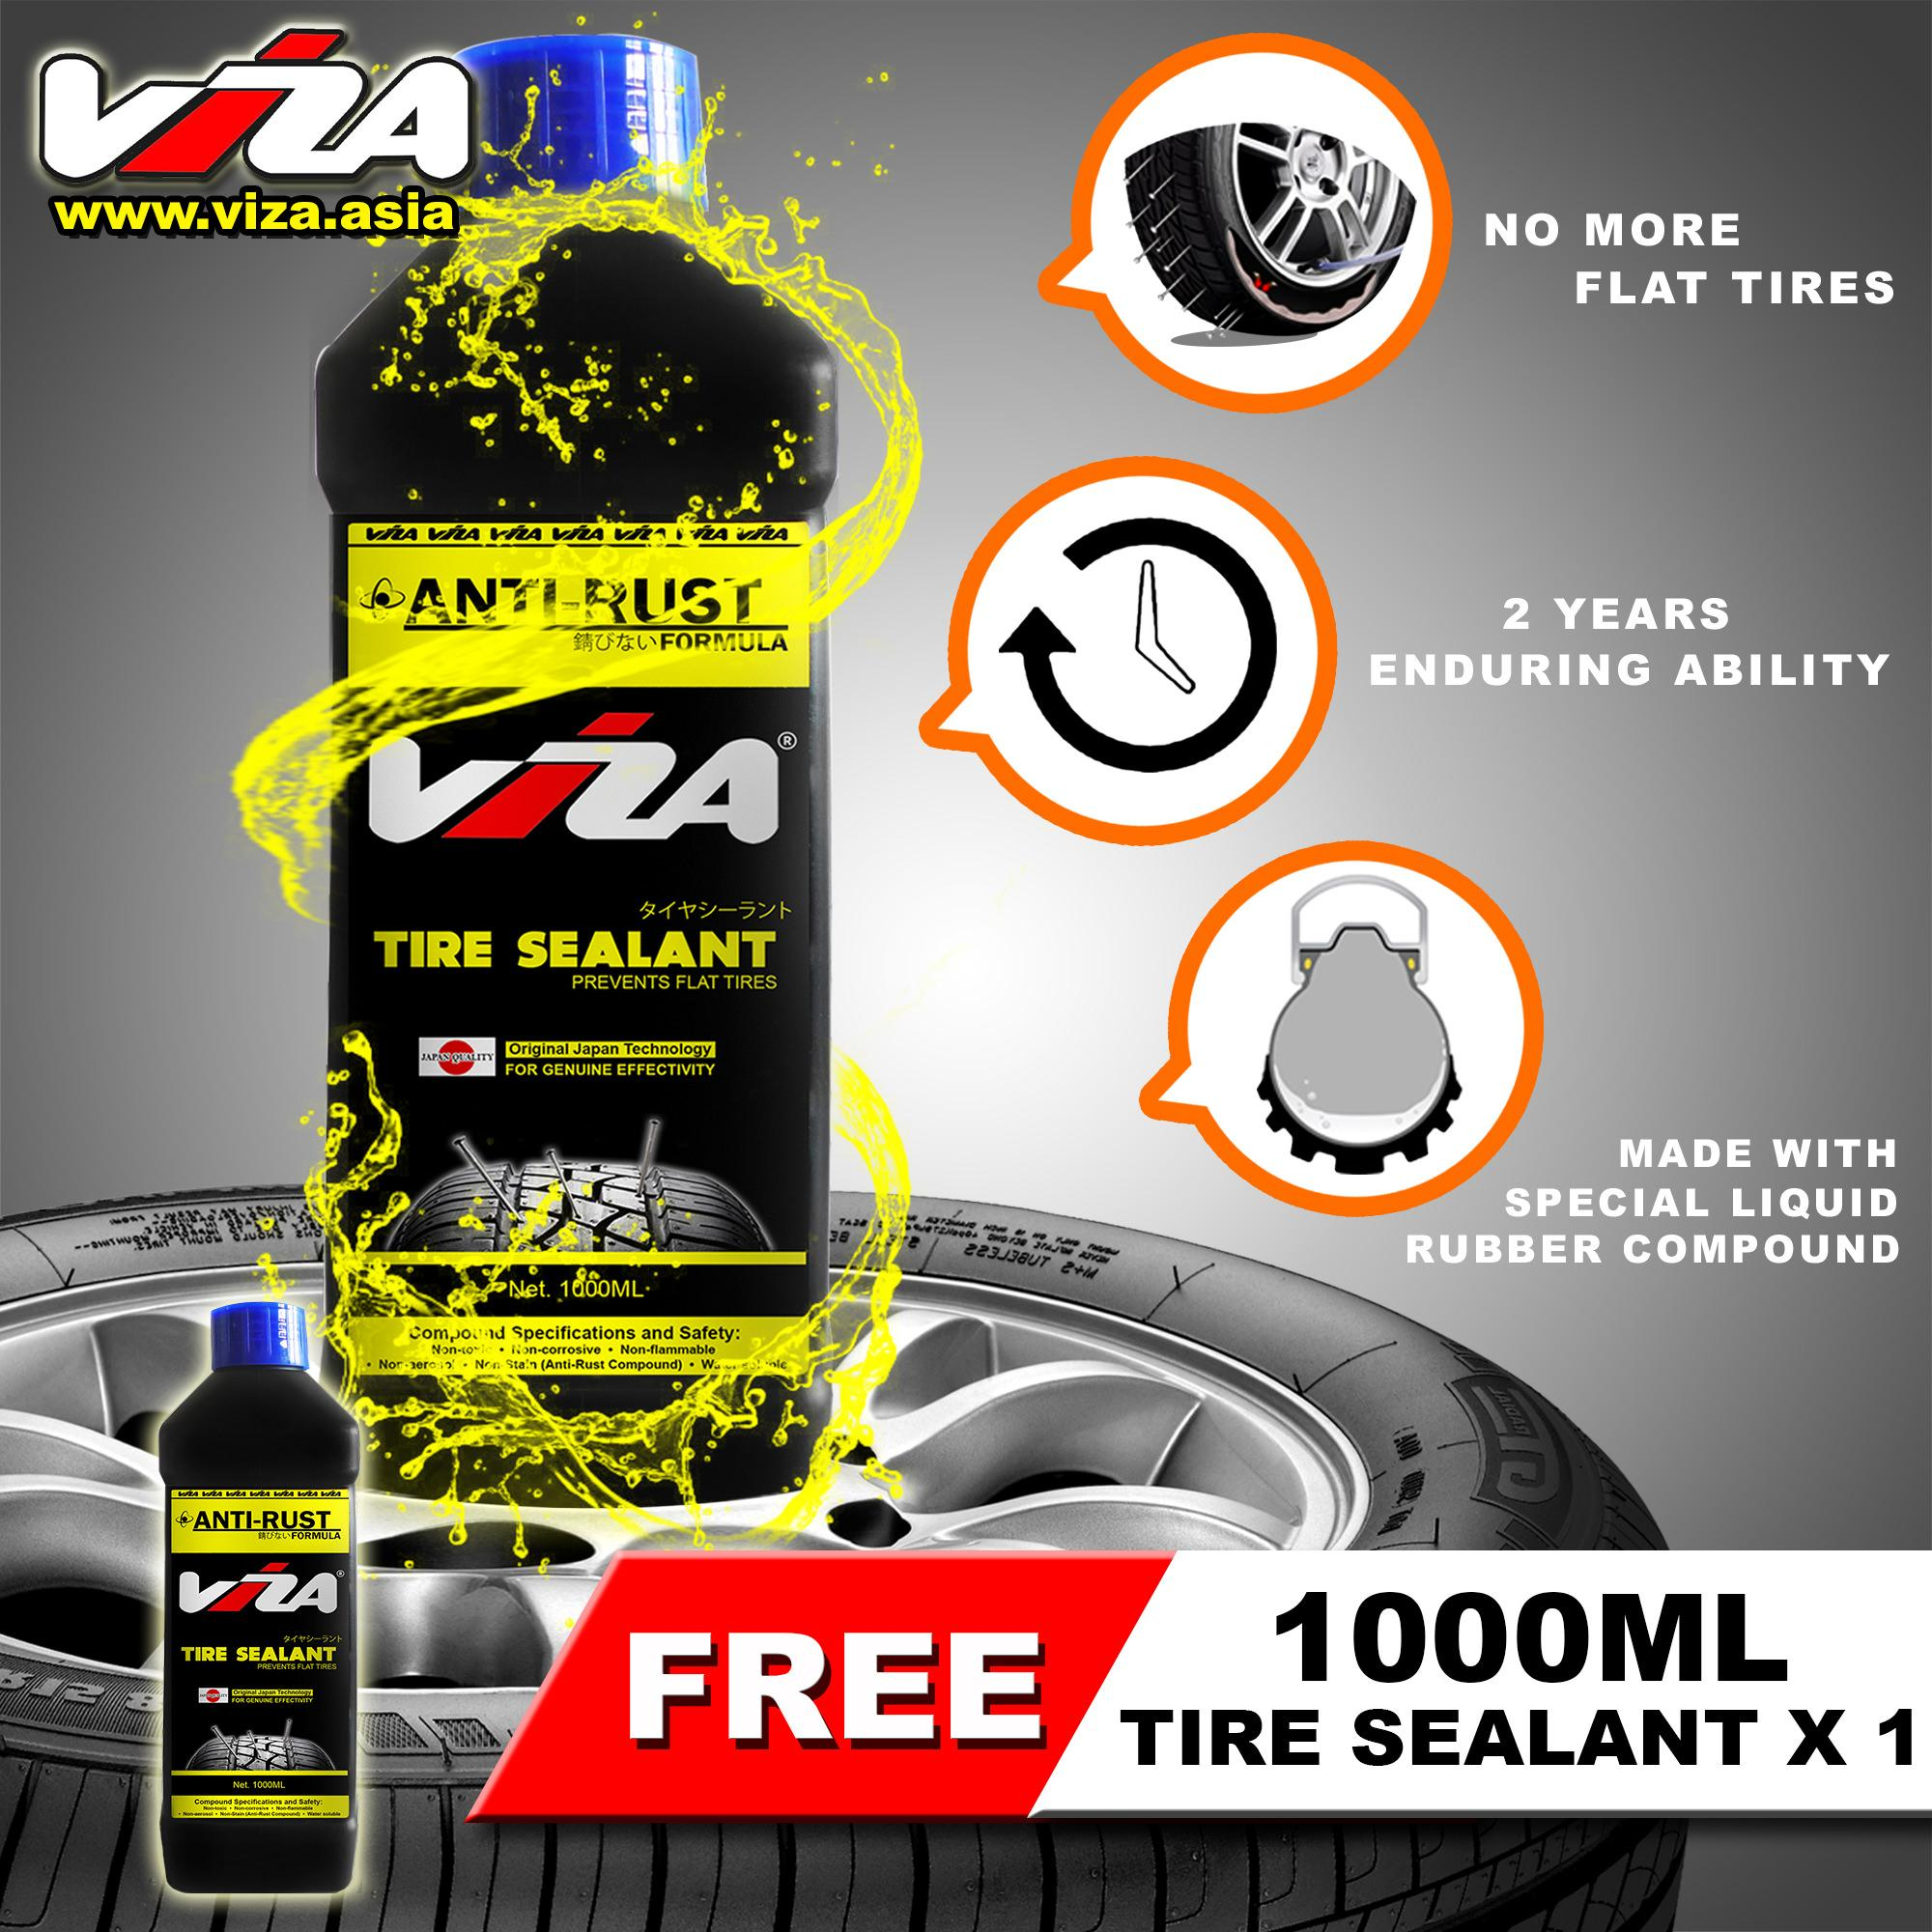 Viza® Premium Tire Tyre Sealant 1l (bundle Of 2 X 1000ml) By Viza International.